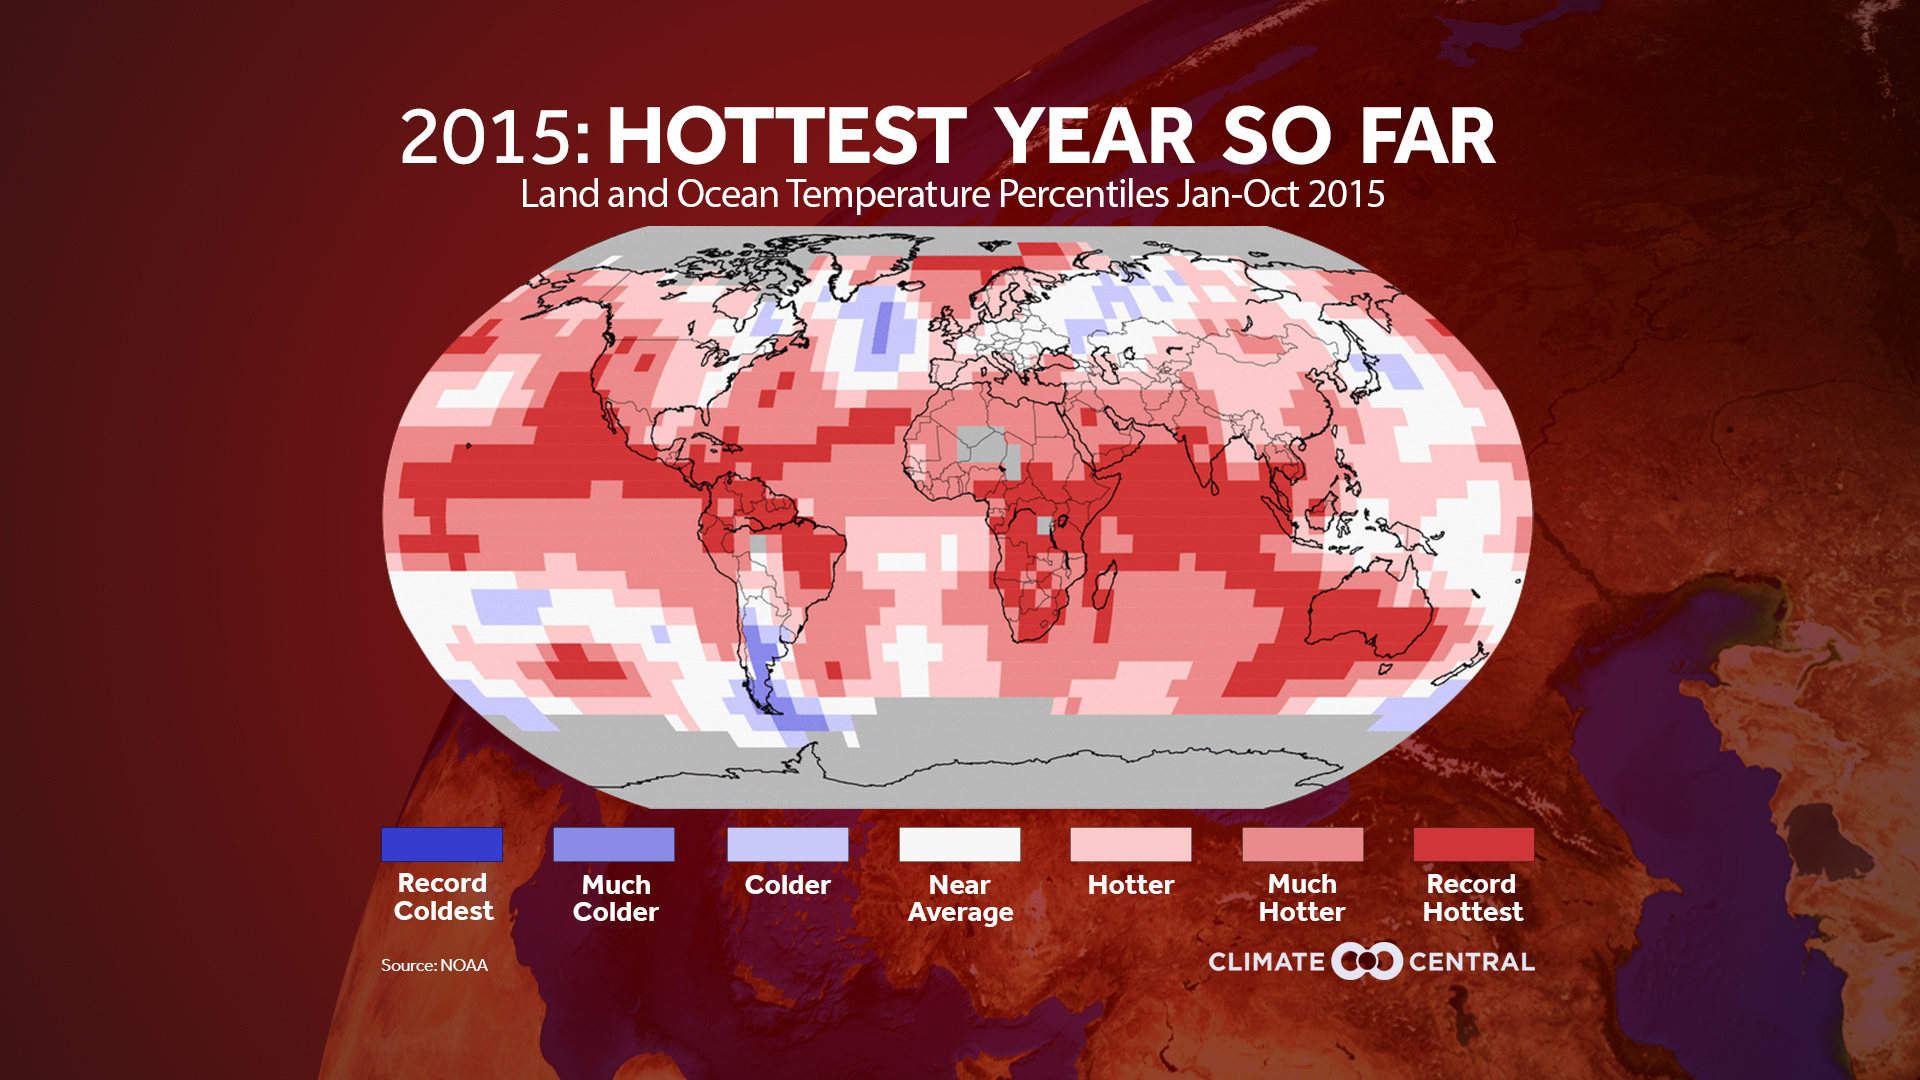 How temperatures across the globe ranked for January - October 2015